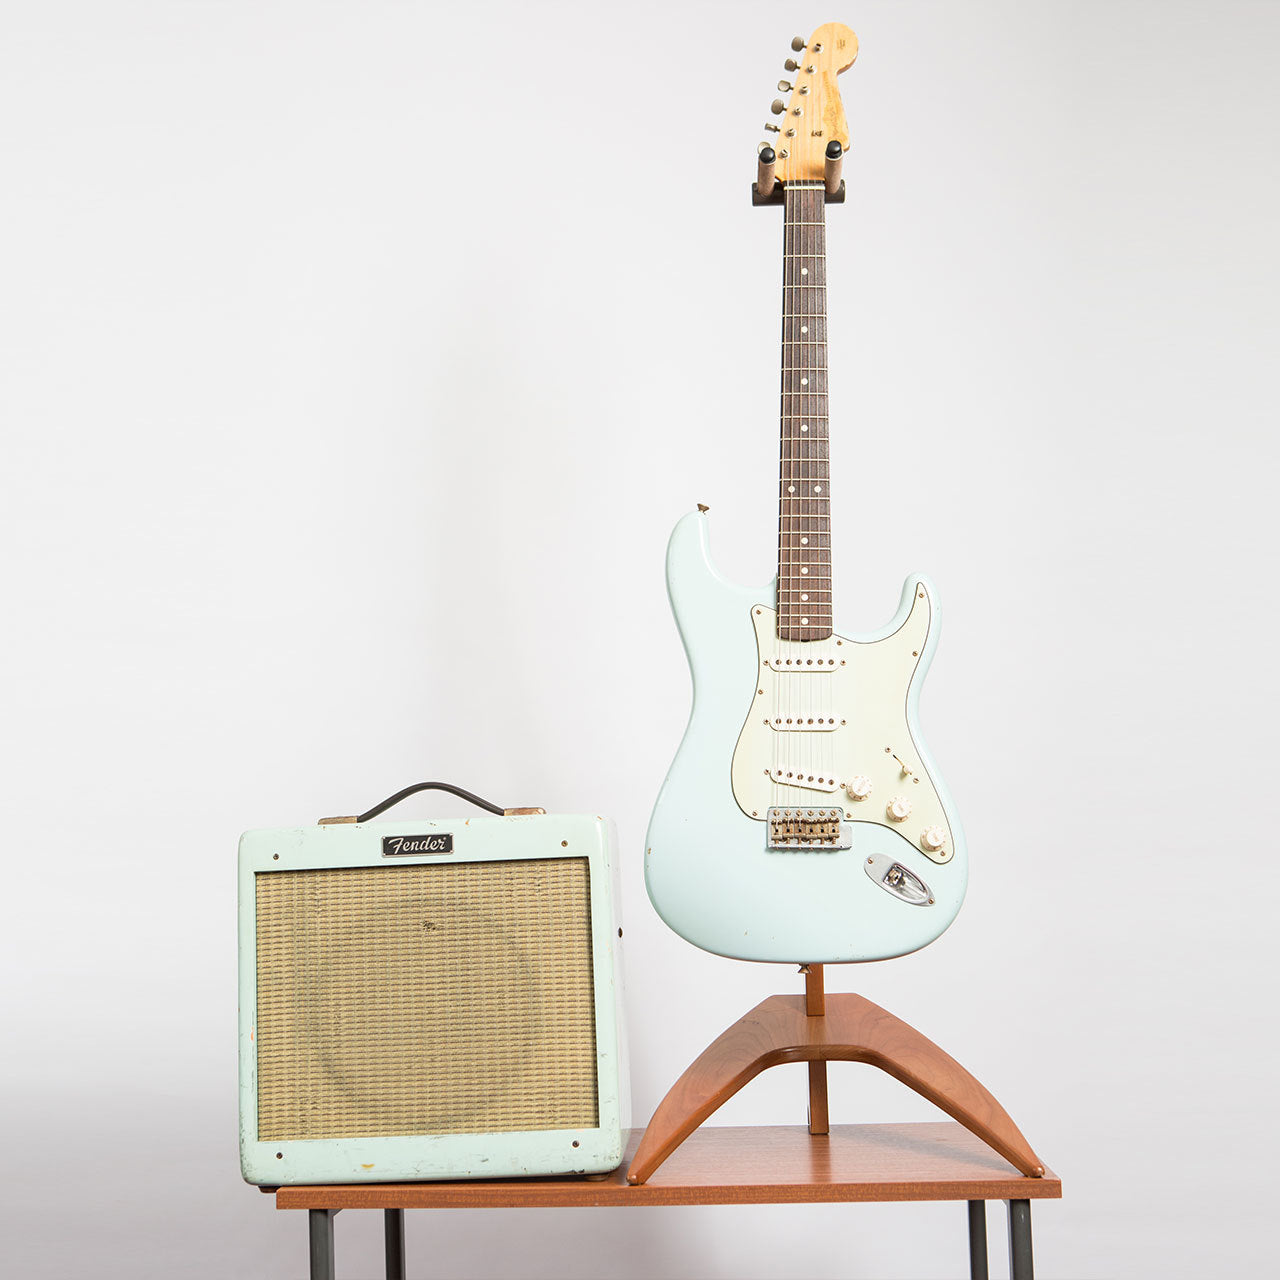 Fender Custom Shop Stratocaster And Pro Jr Set In Sonic Blue The